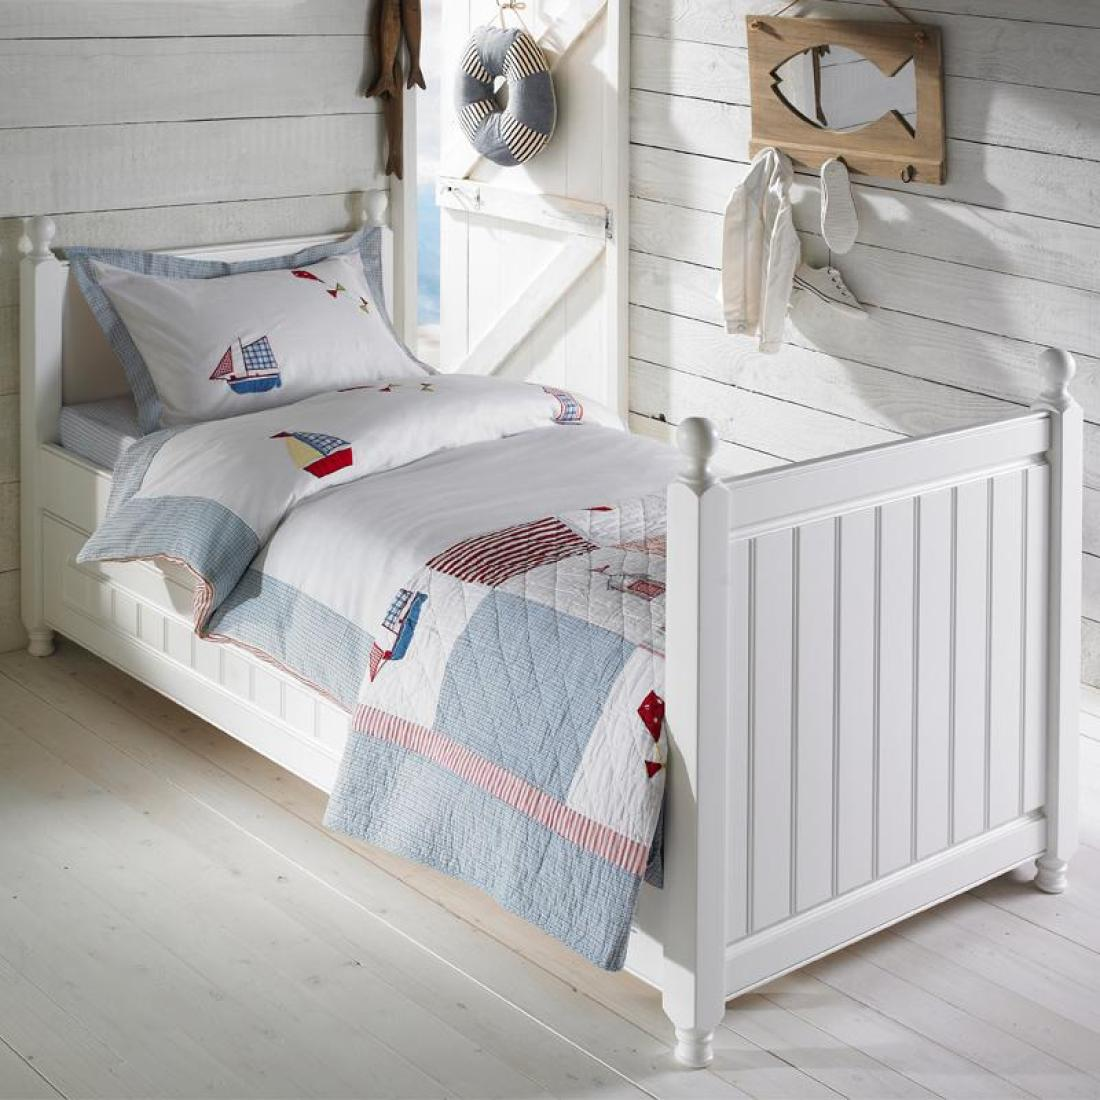 Jack and molly bed childrens bedroom furniture uk for Youth furniture